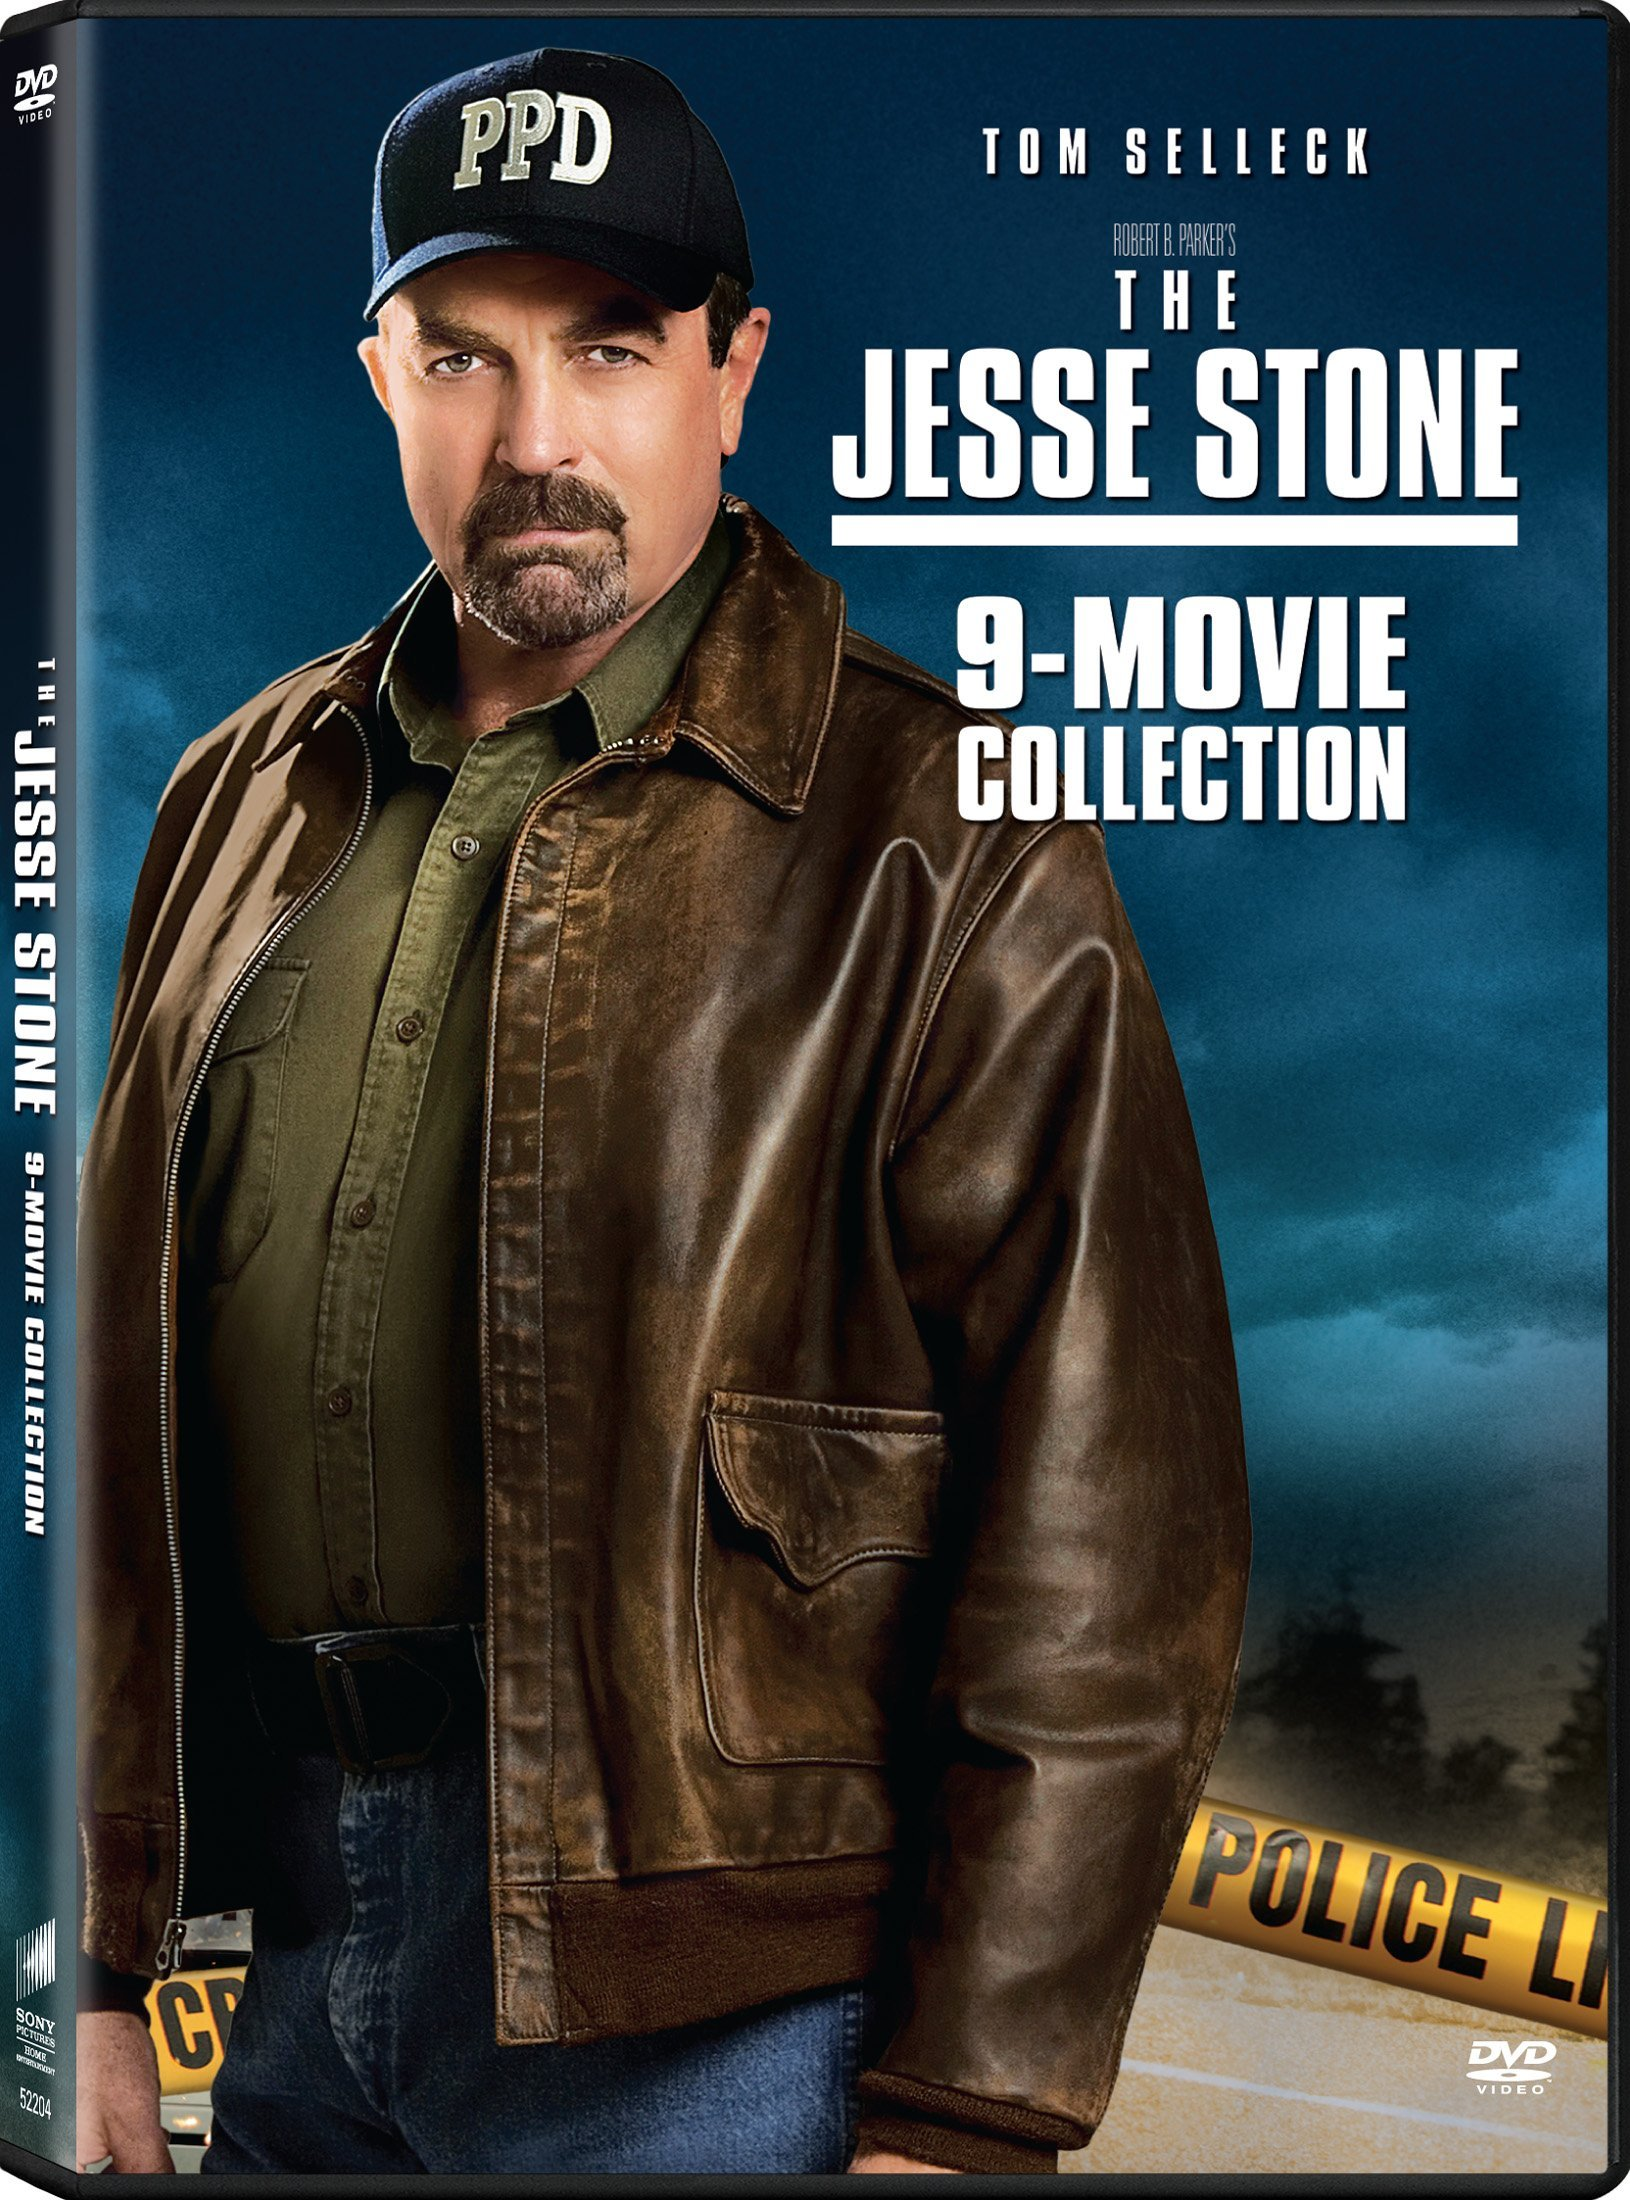 DVD : The Jesse Stone 9-Movie Collection (Boxed Set, Widescreen, Dolby, AC-3, )